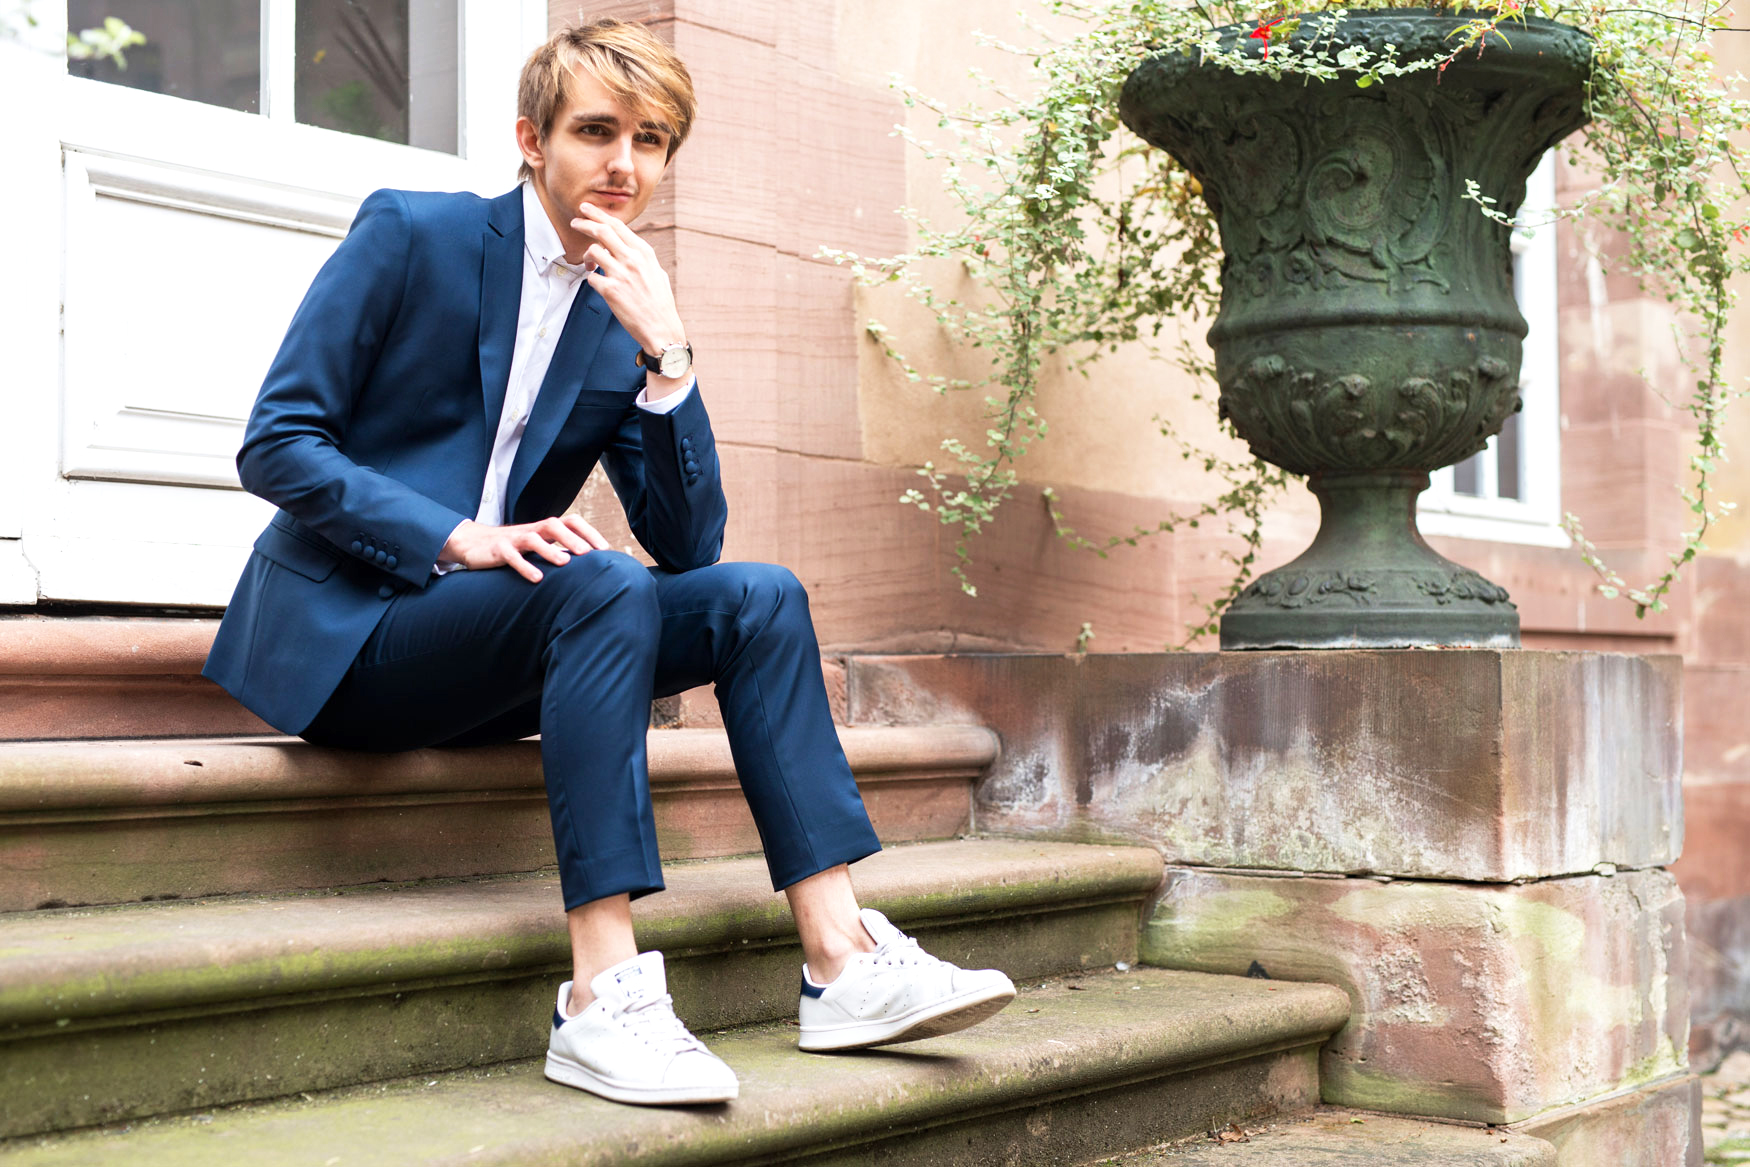 blog-mode-strasbourg-homme-lifestyle-costume-sneakers-baskets-suit-style-tendances-fashion-blogger-french-faubourg-saint-sulpice-paris-blog-3